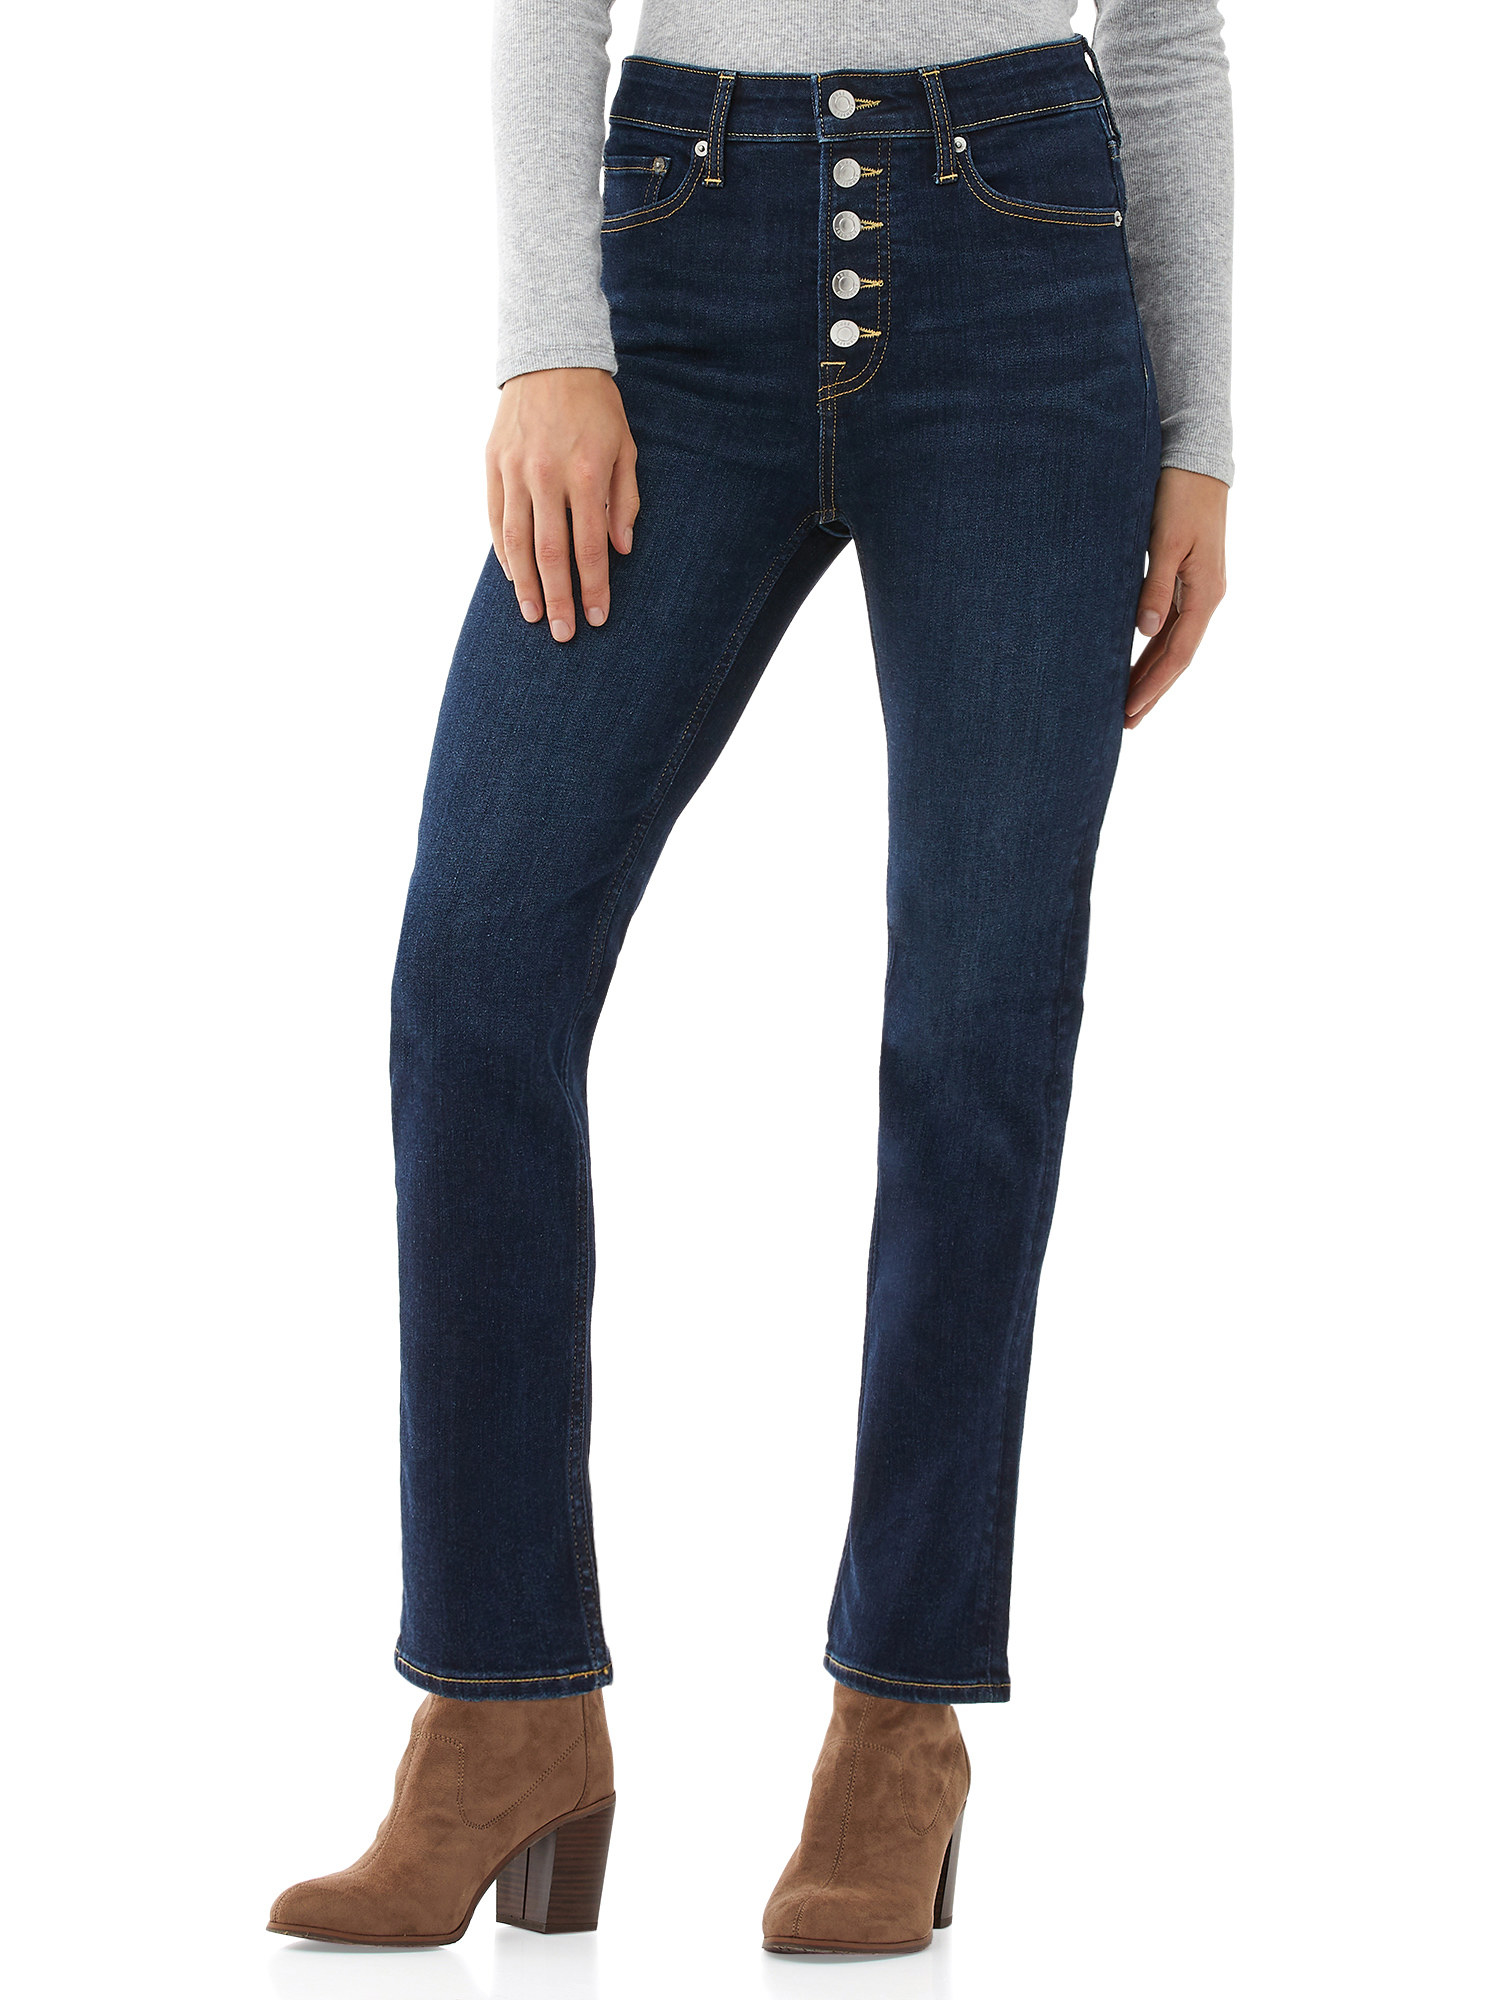 Model in button front jeans and brown booties